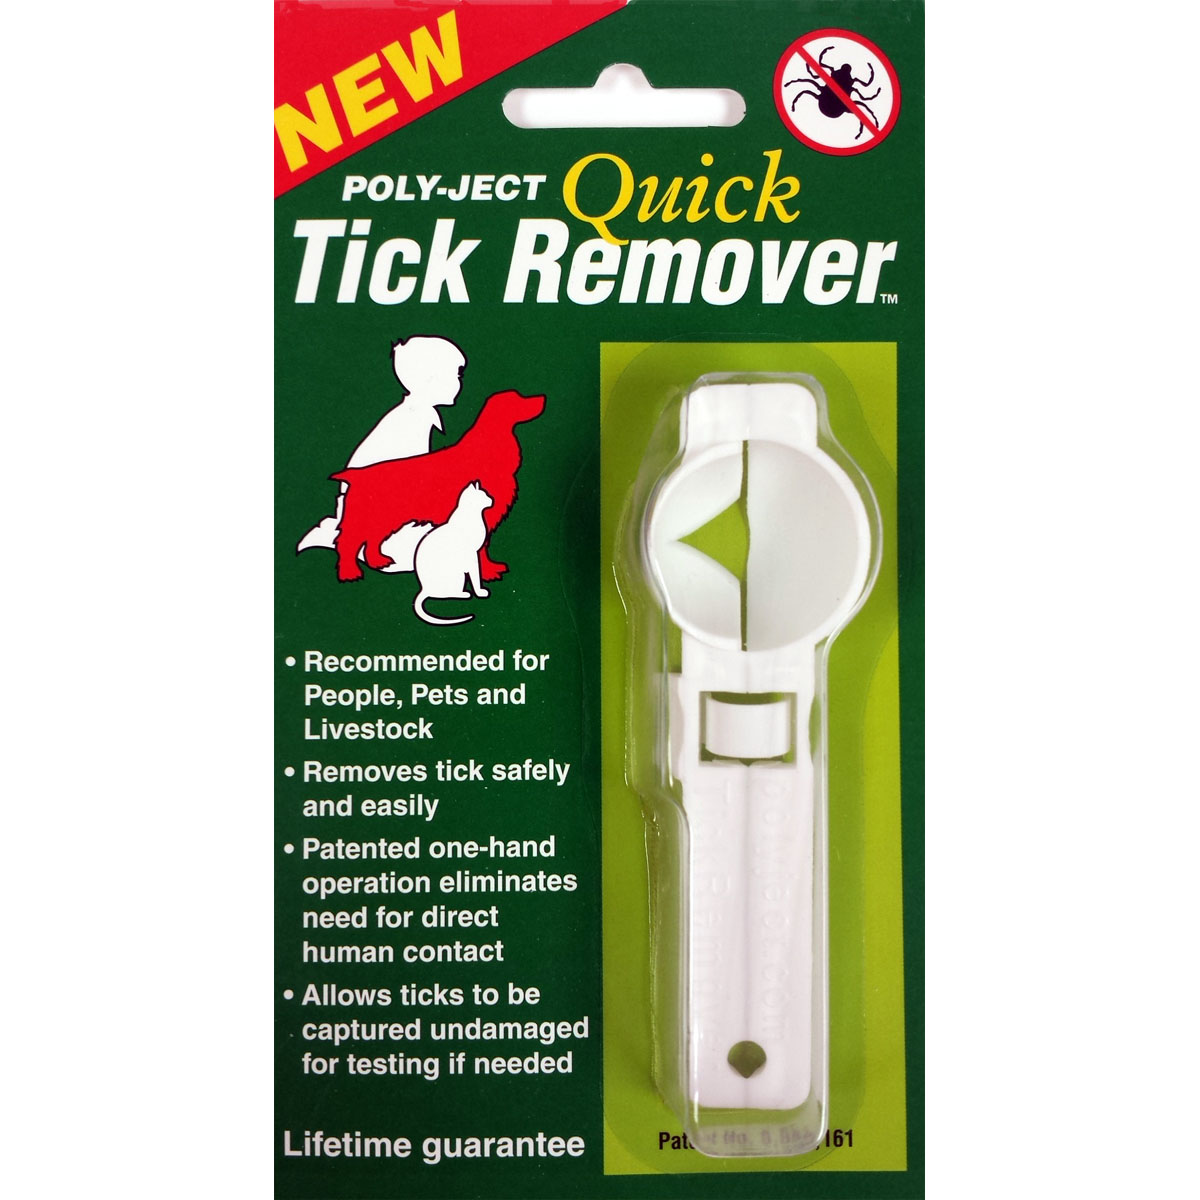 Tick Remover, World's Simplest Tick Remover